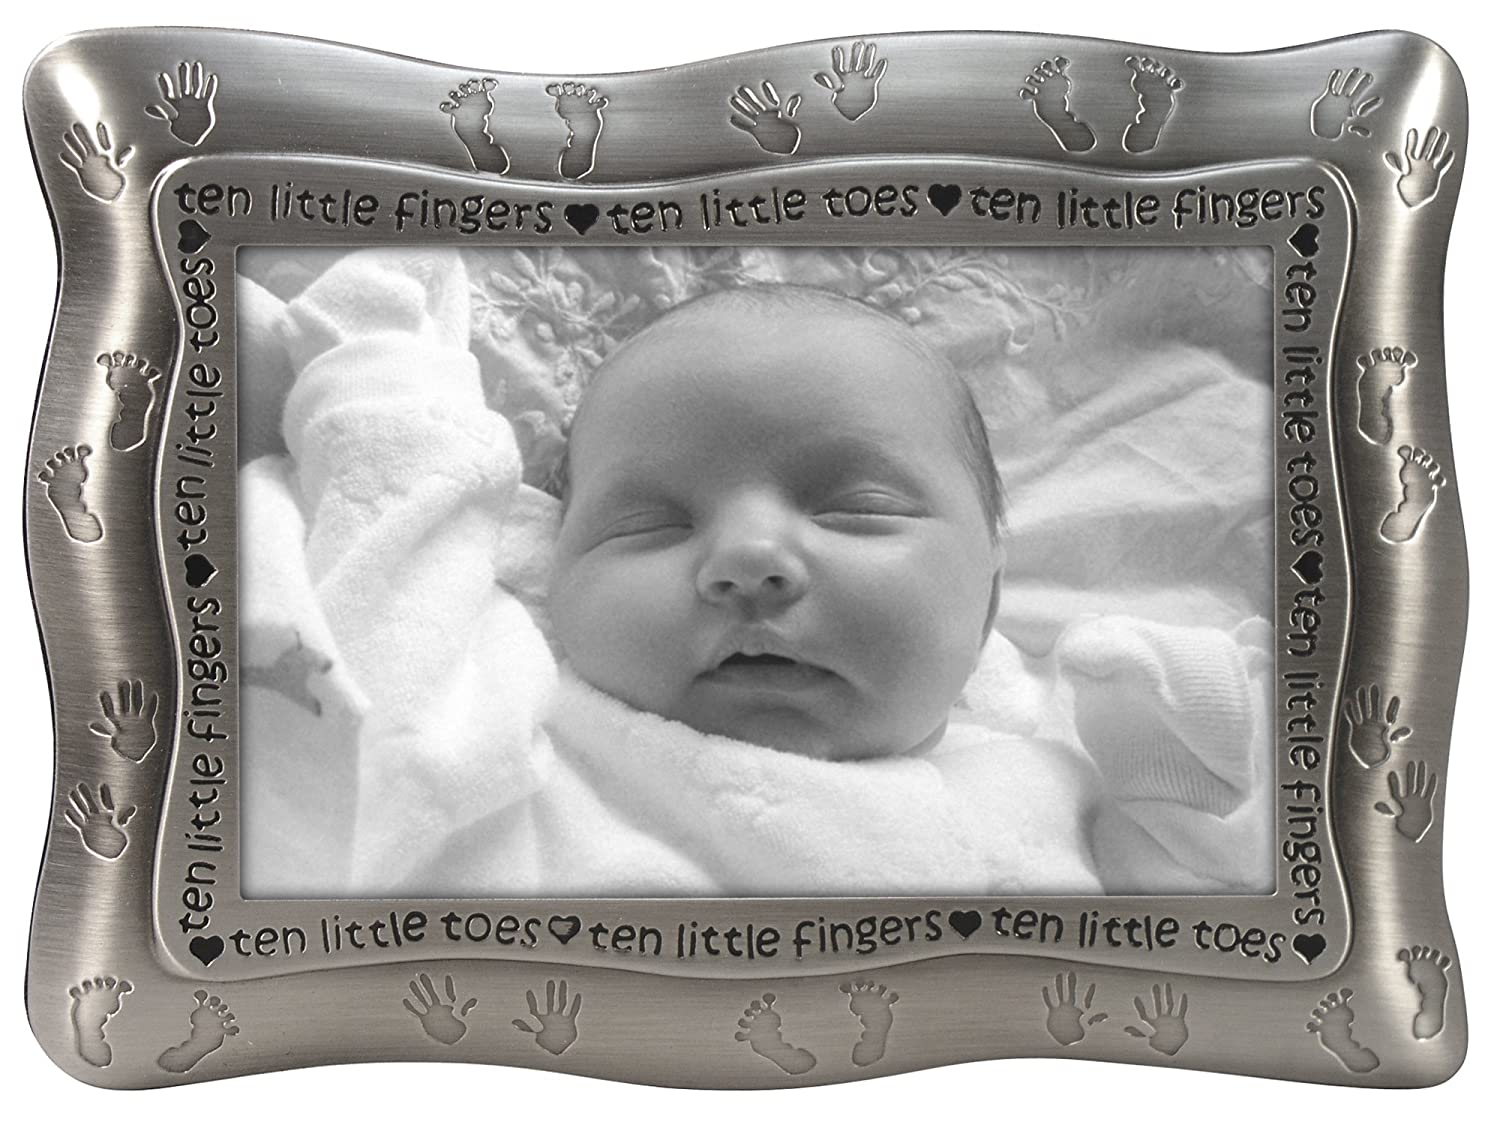 Malden Ten Little Fingers, Ten Little Toes Pewter Frame, Pewter Malden International 6977-46